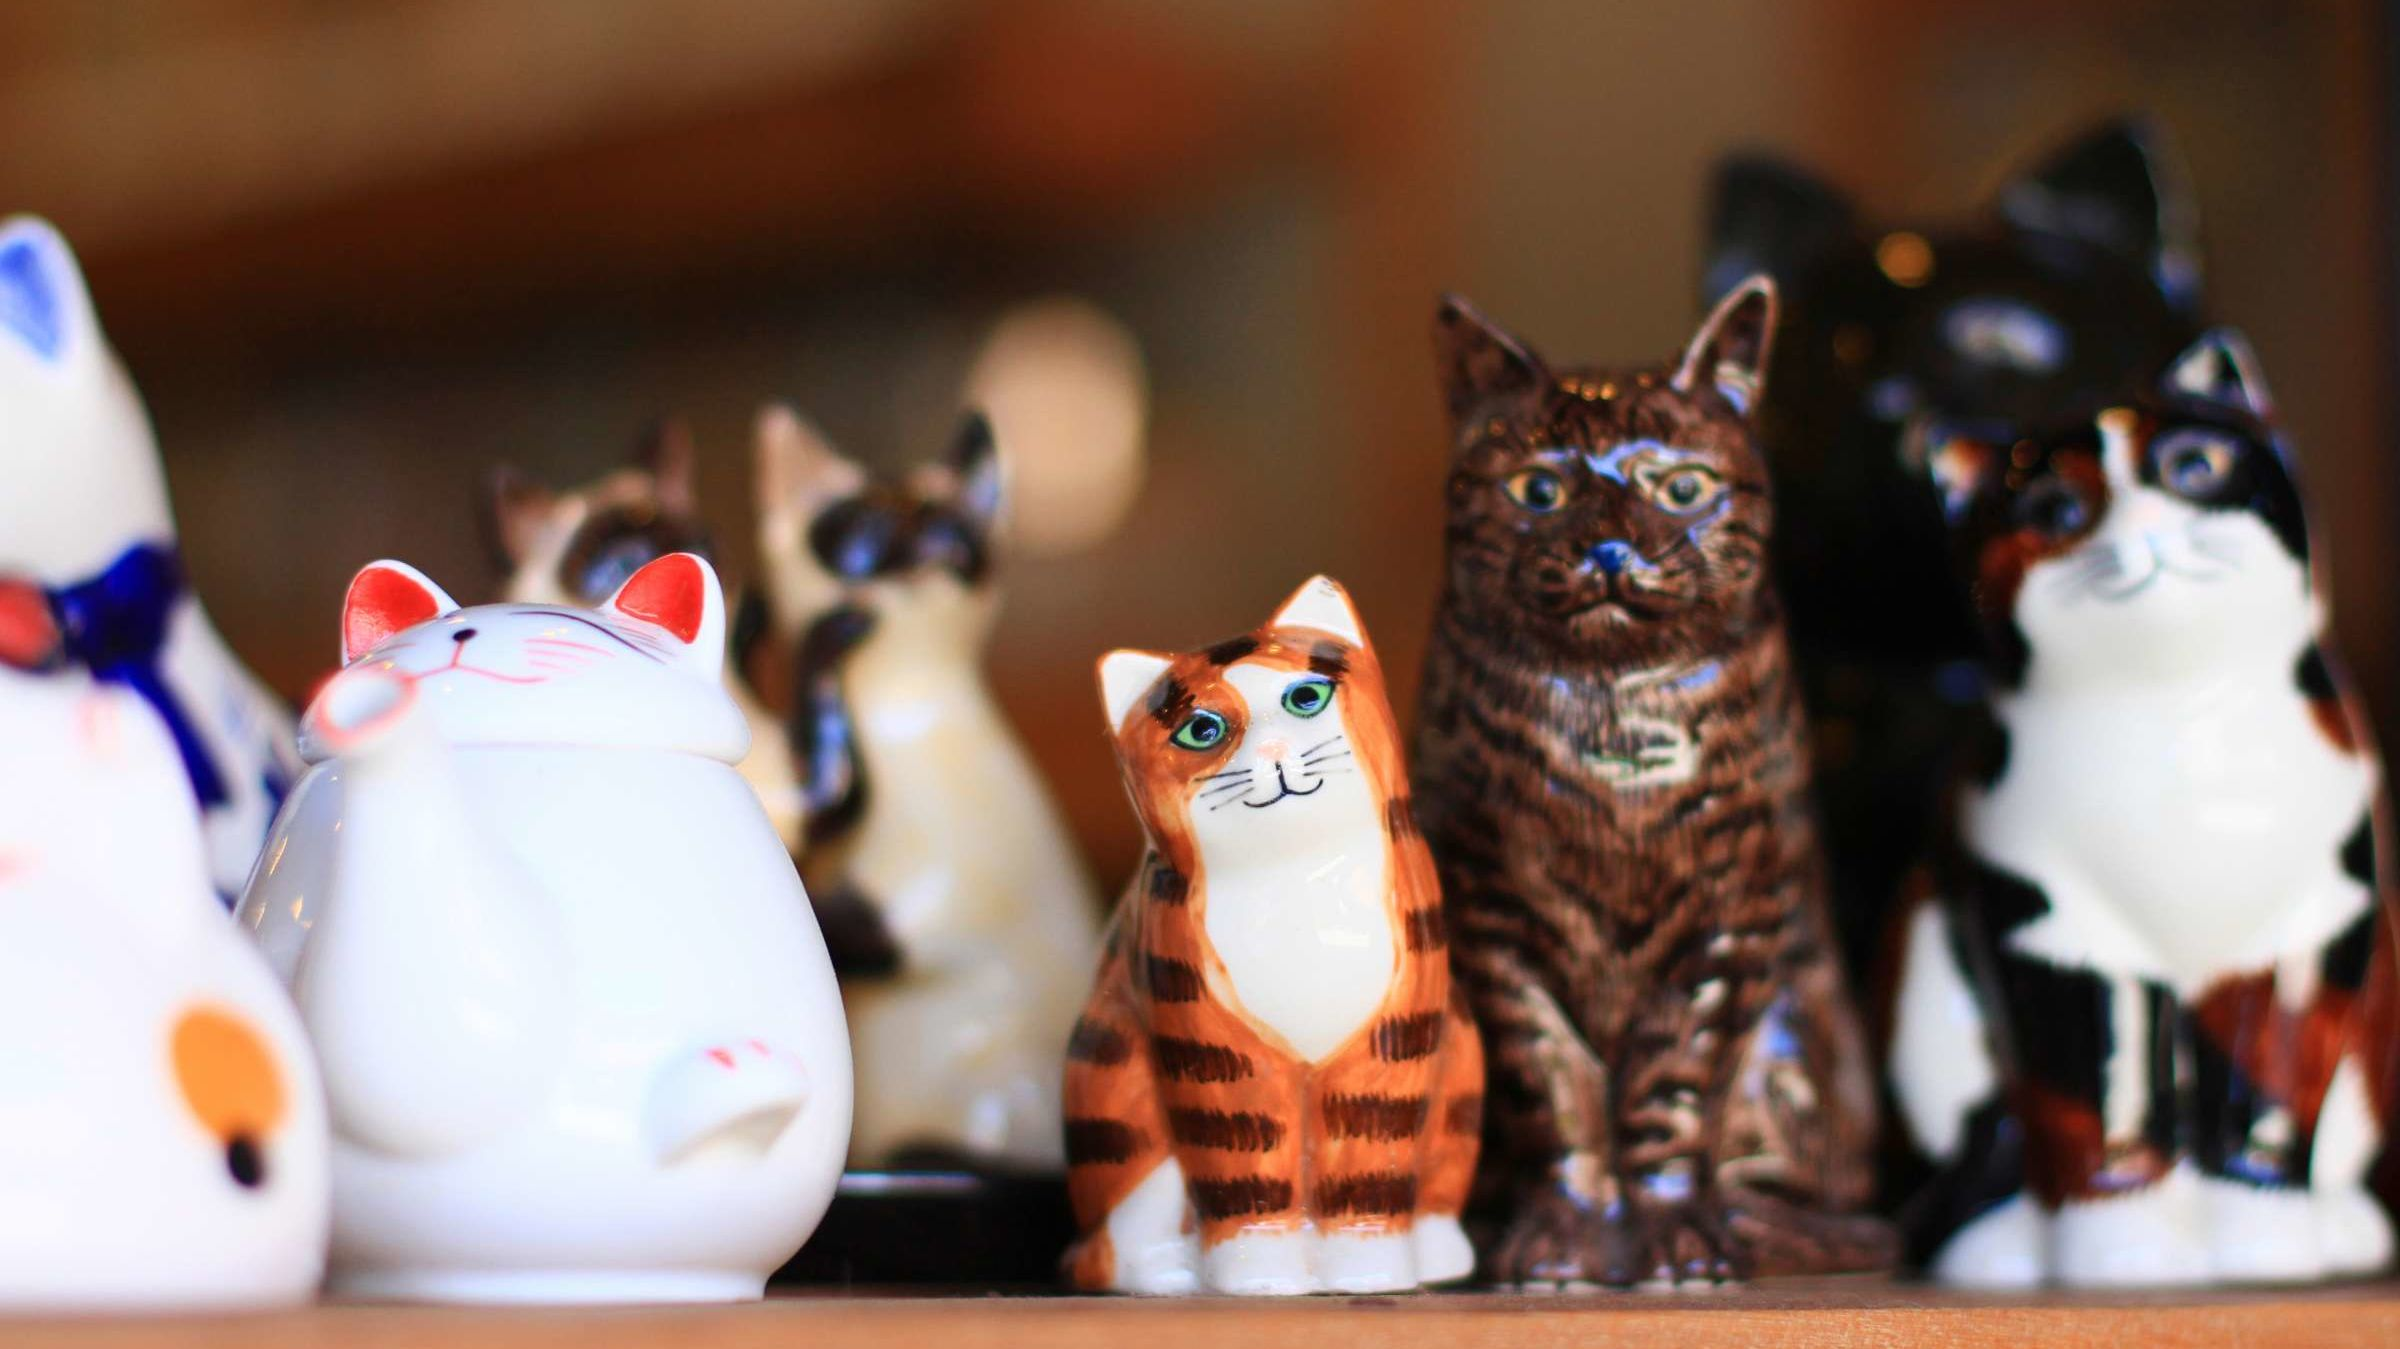 Poland Is Residence to a Very Tiny Cat Museum